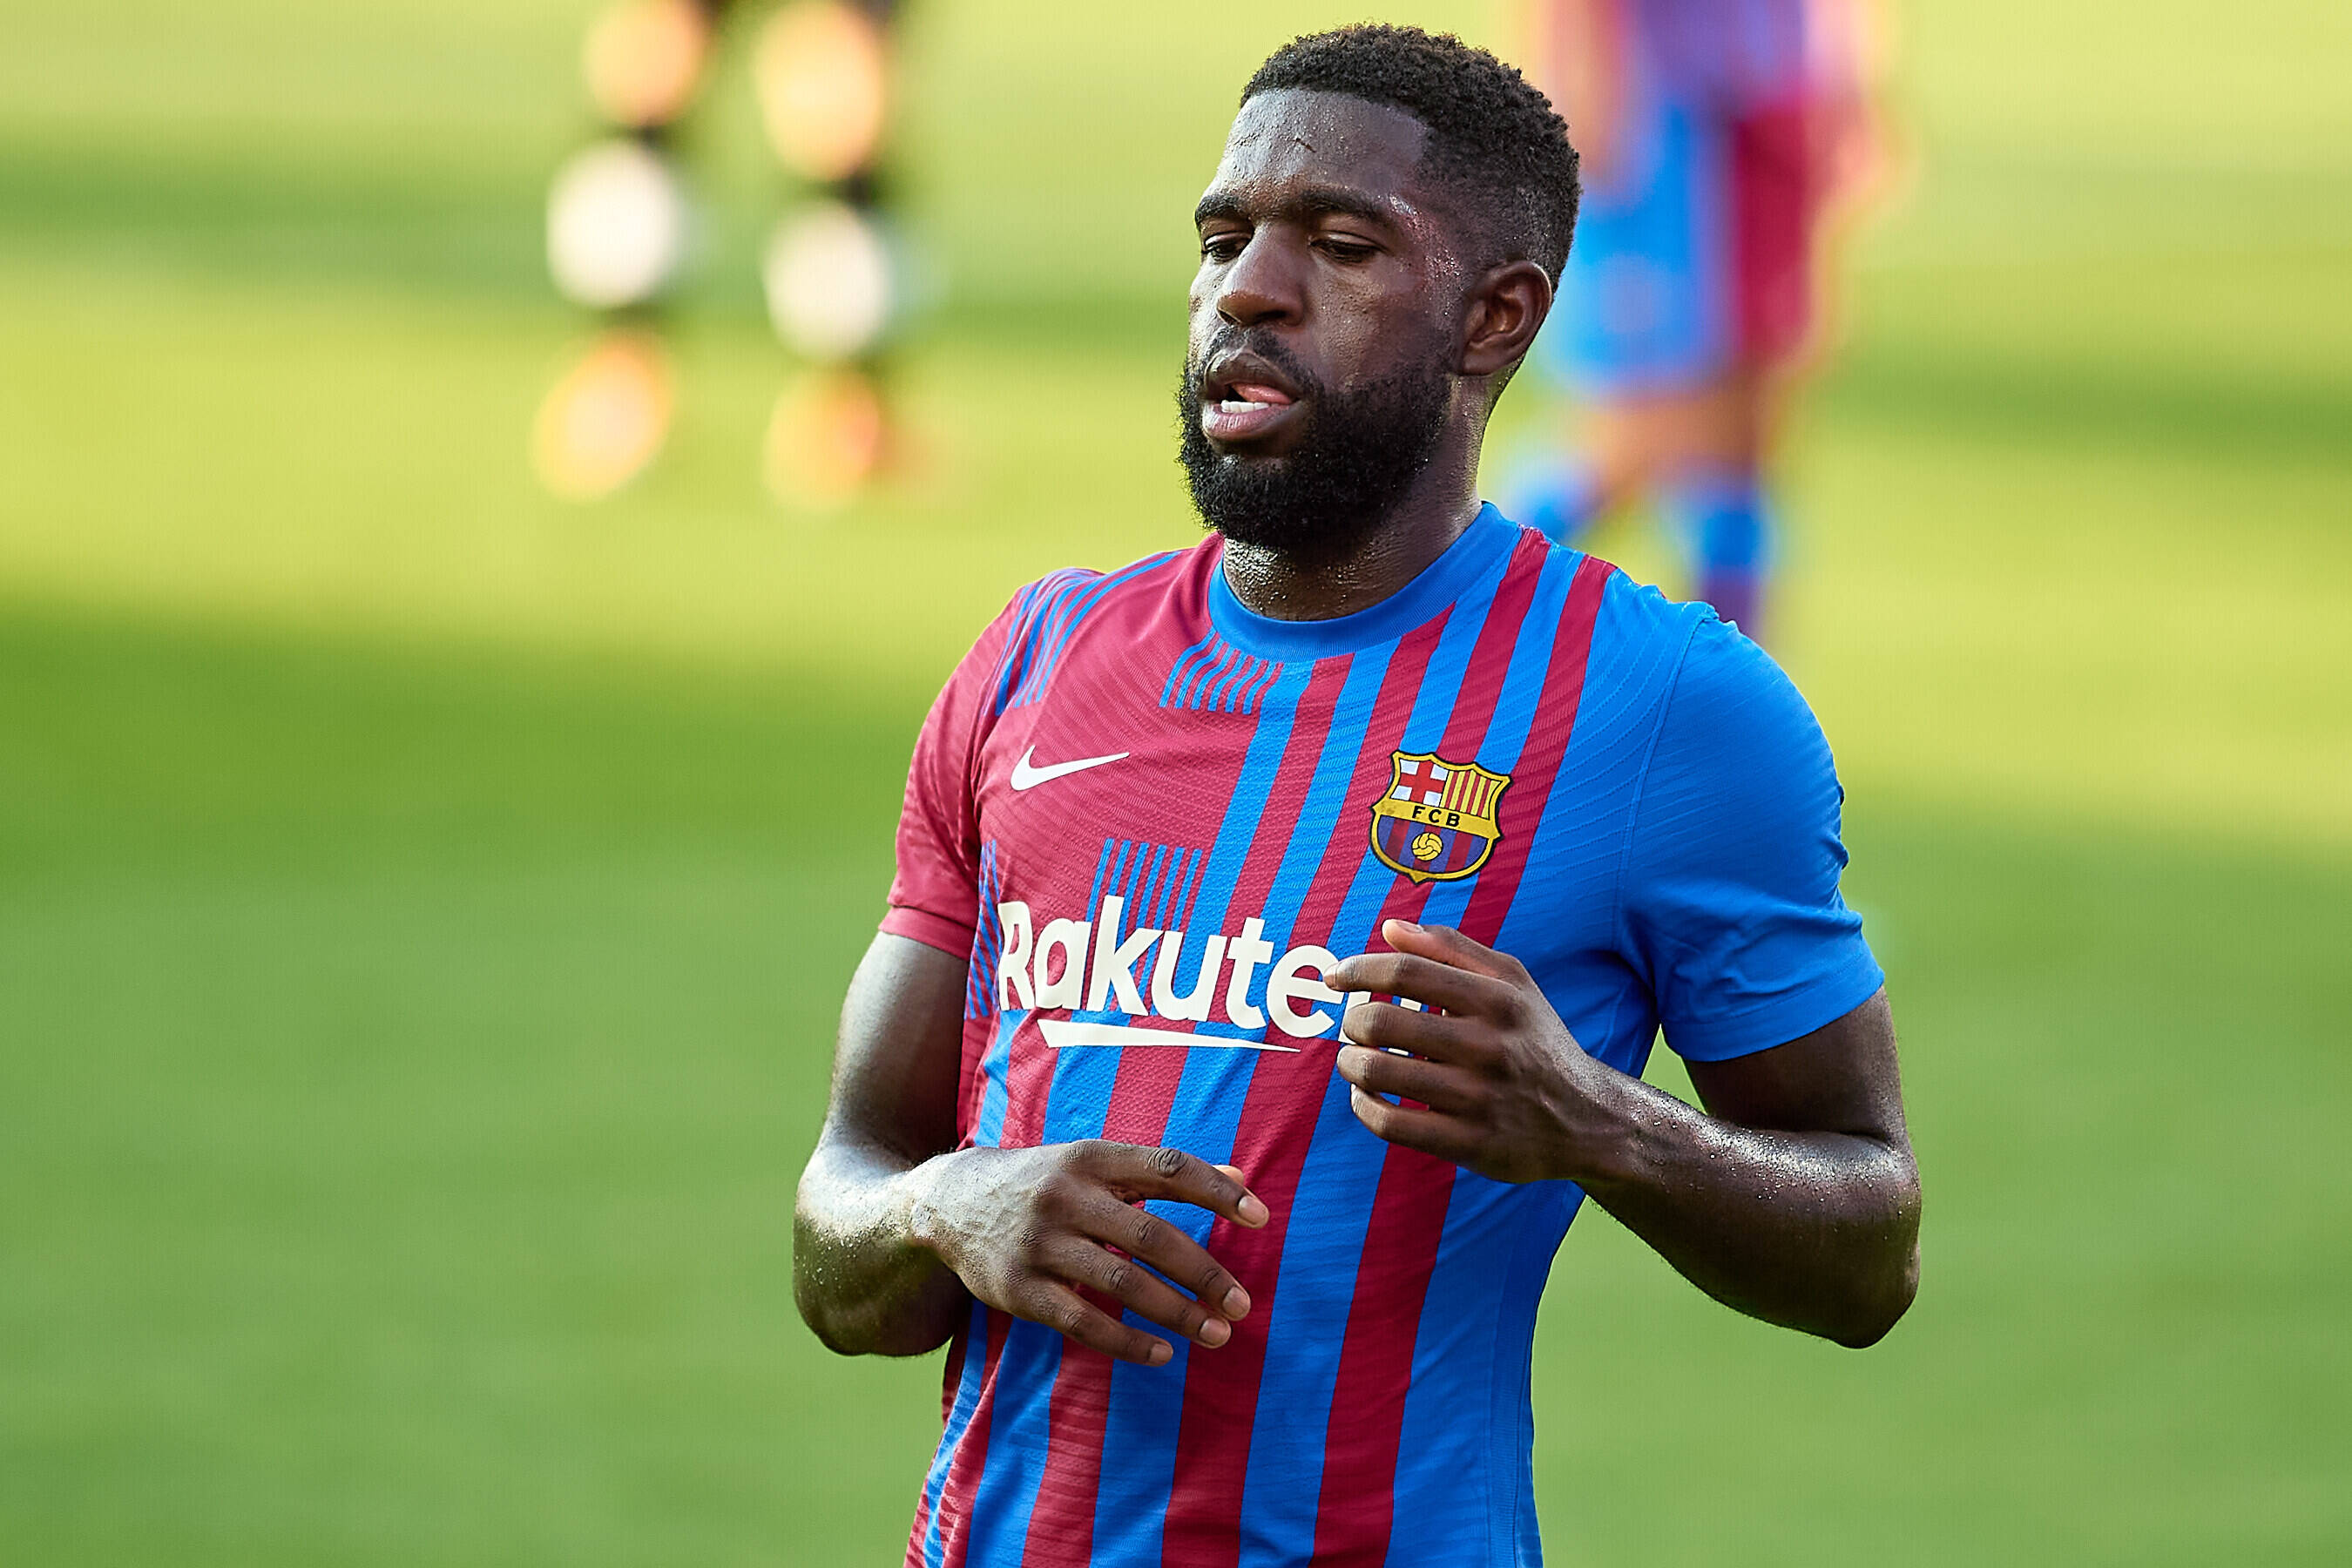 Barcelona offered chance to make €10m transfer windfall amid financial crisis